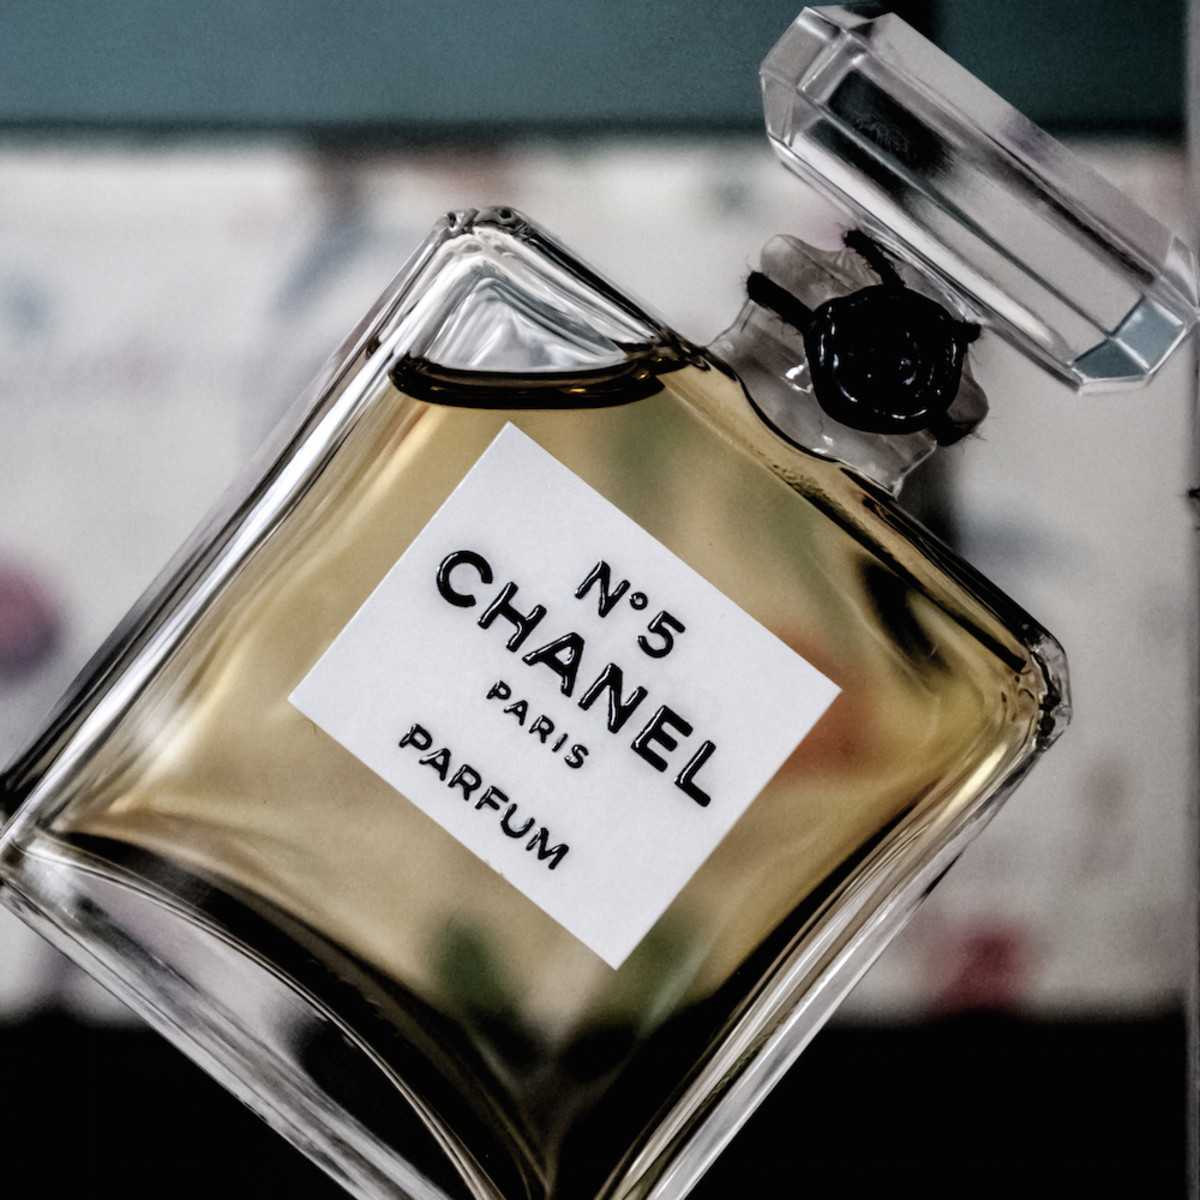 Why Is Chanel No5 The World's Favourite Perfume?